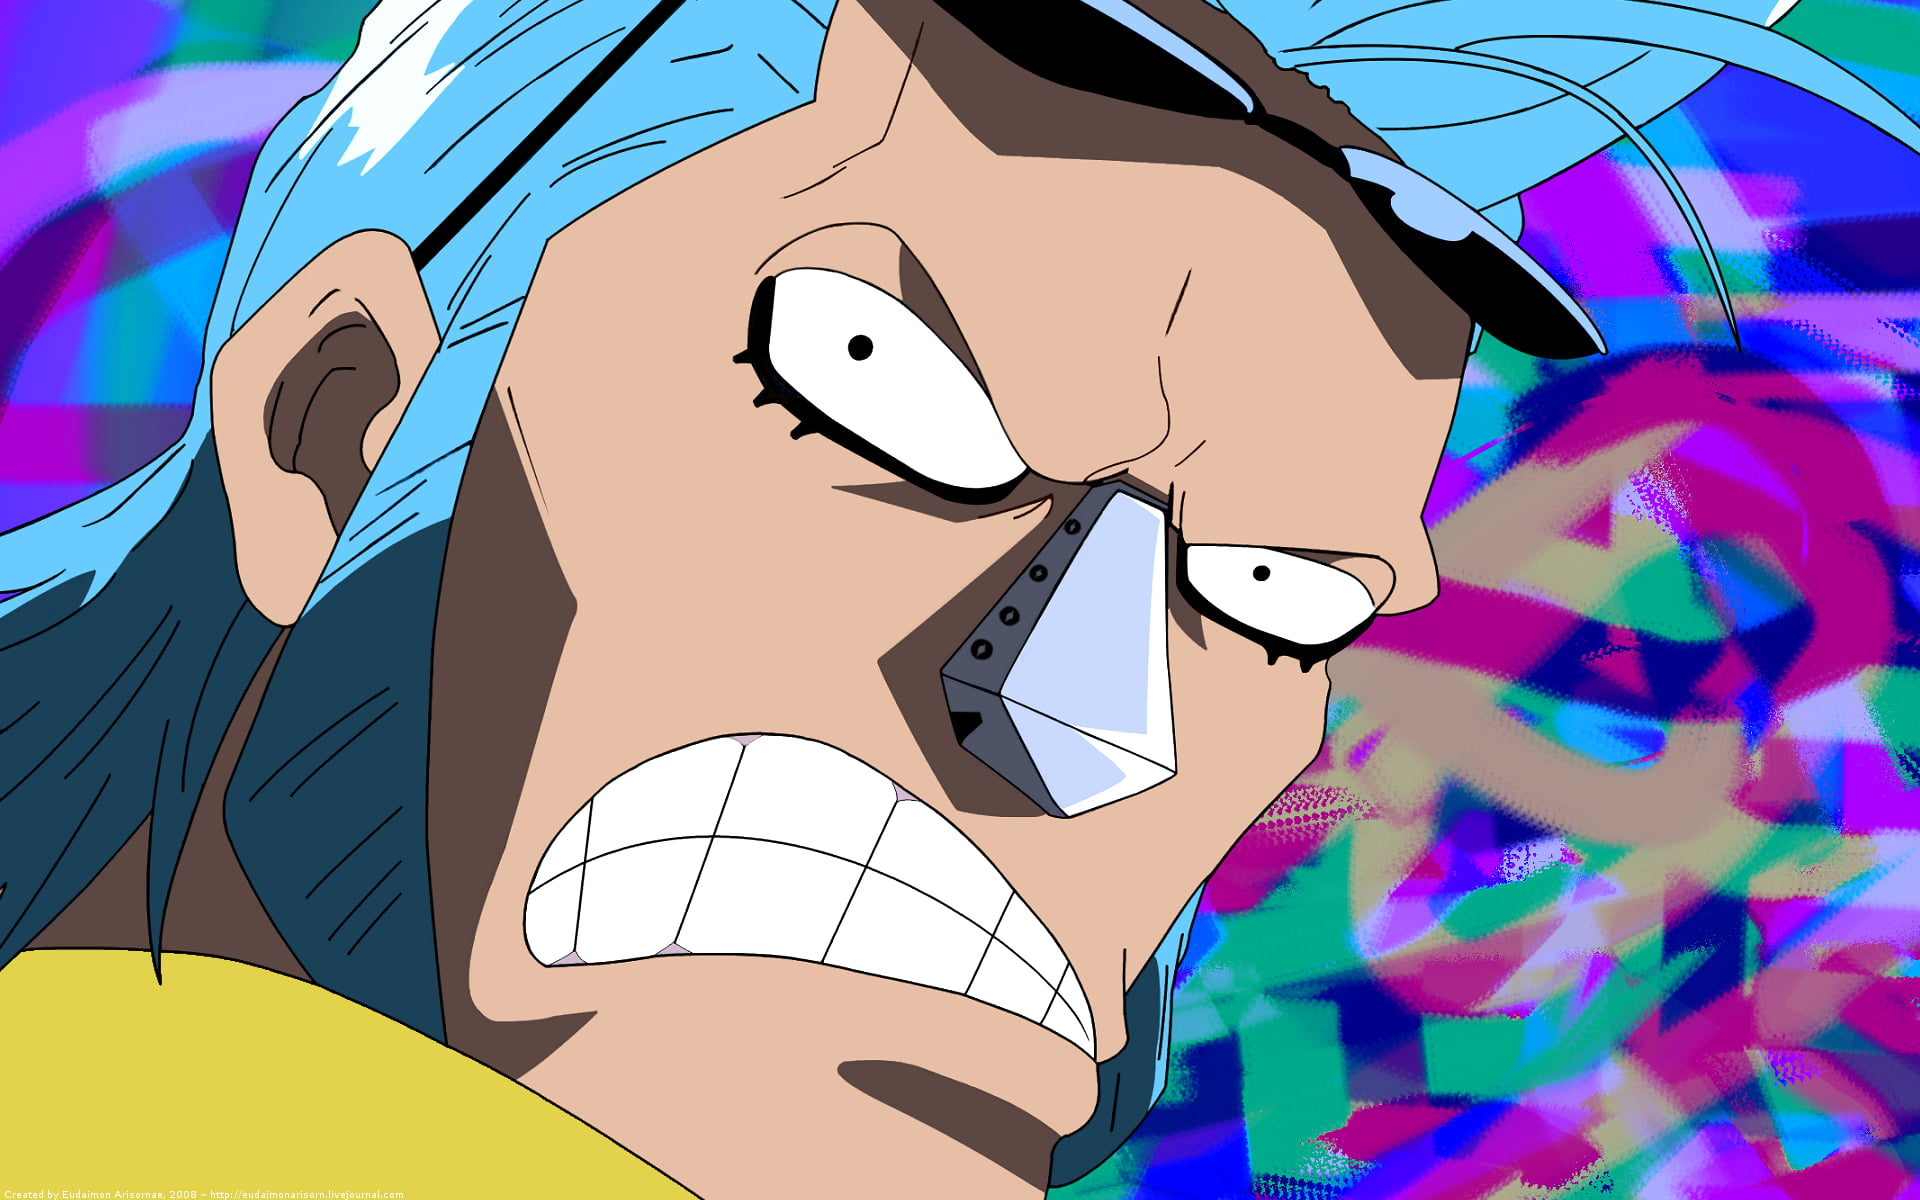 One Piece Character One Piece Anime Frankie Hd Wallpaper Franky 1387979 Hd Wallpaper Backgrounds Download